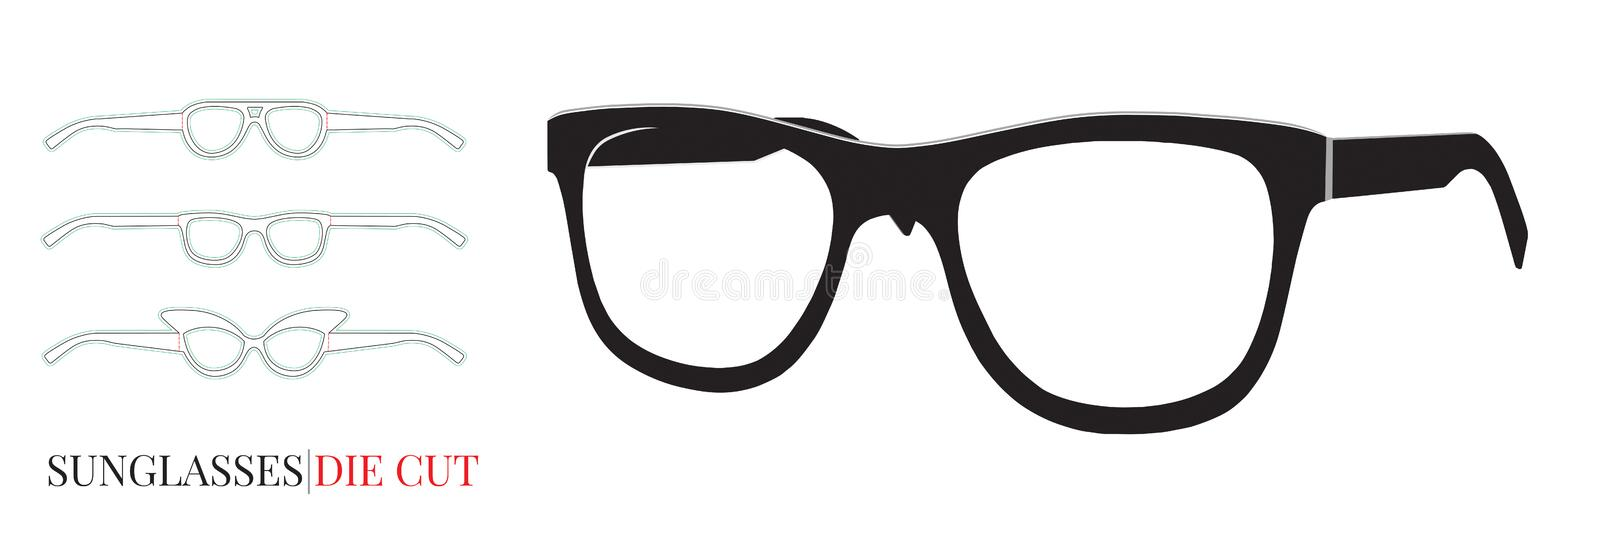 Retro Black Glasses Frame isolated on white, Vector with die cut / laser cut layers. Modern glasses icon, Eyeglasses model. Black Glasses Frame isolated on white stock illustration